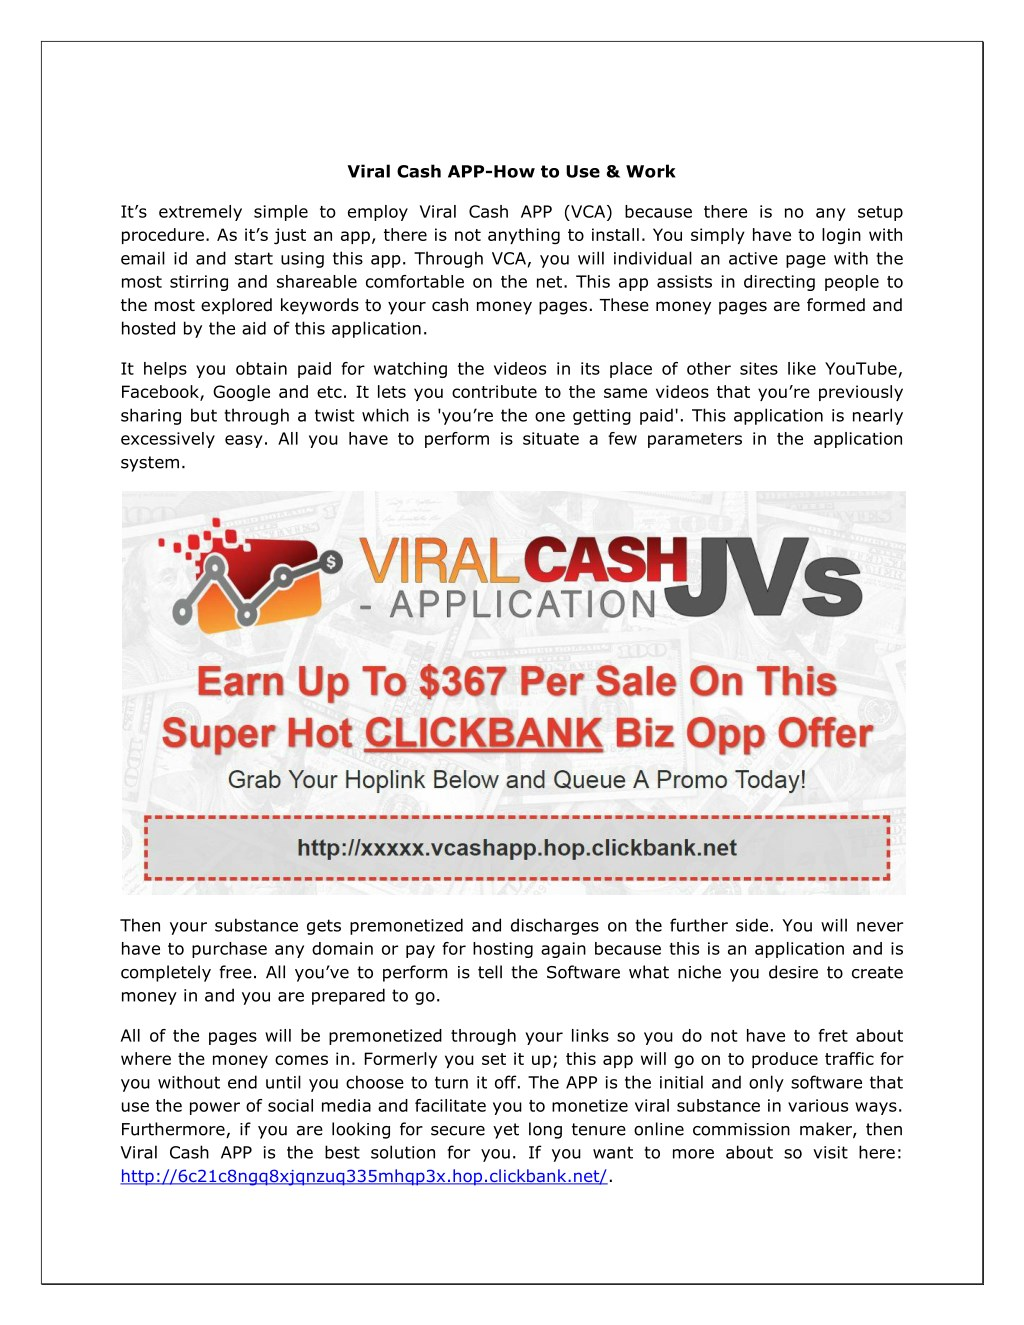 PPT - Viral Cash APP-How to Use & Work PowerPoint